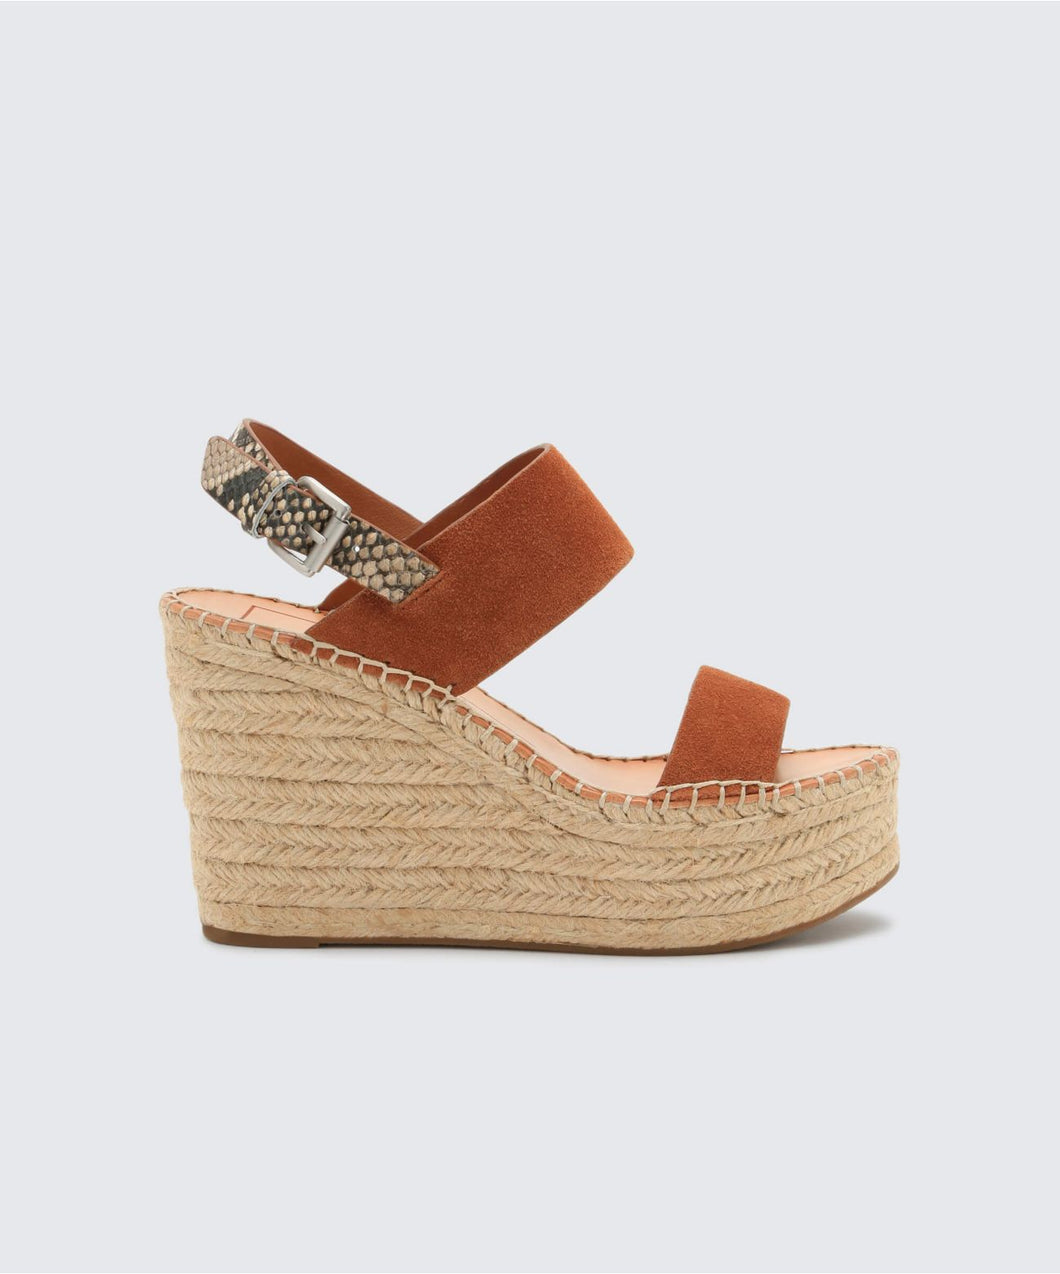 SPIRO WEDGES BROWN -   Dolce Vita